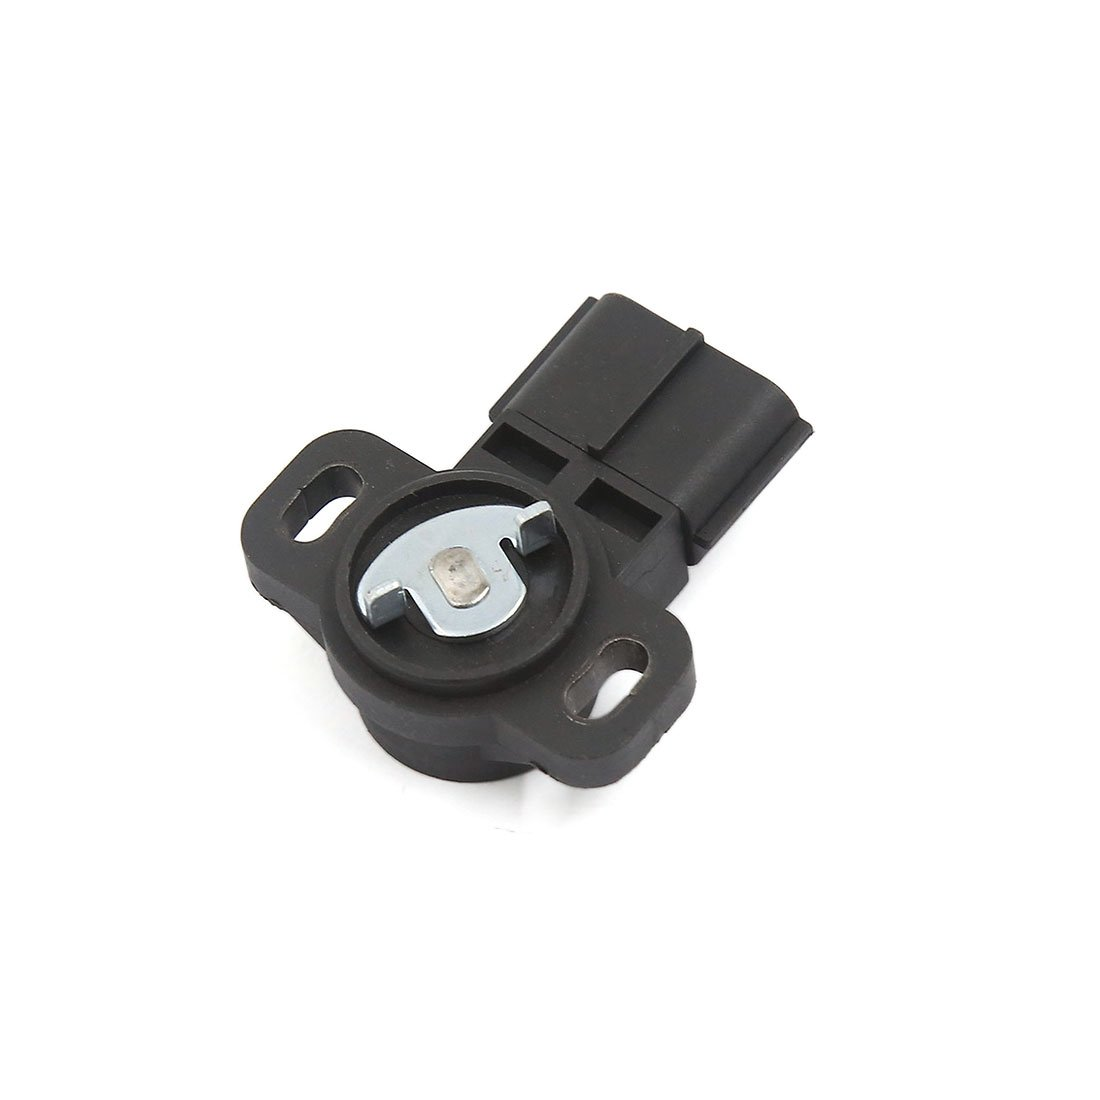 uxcell Throttle Position Sensor 35102-39000 Fits For 2002-2006 Kia Sedona Sorento US-SA-AJD-195498